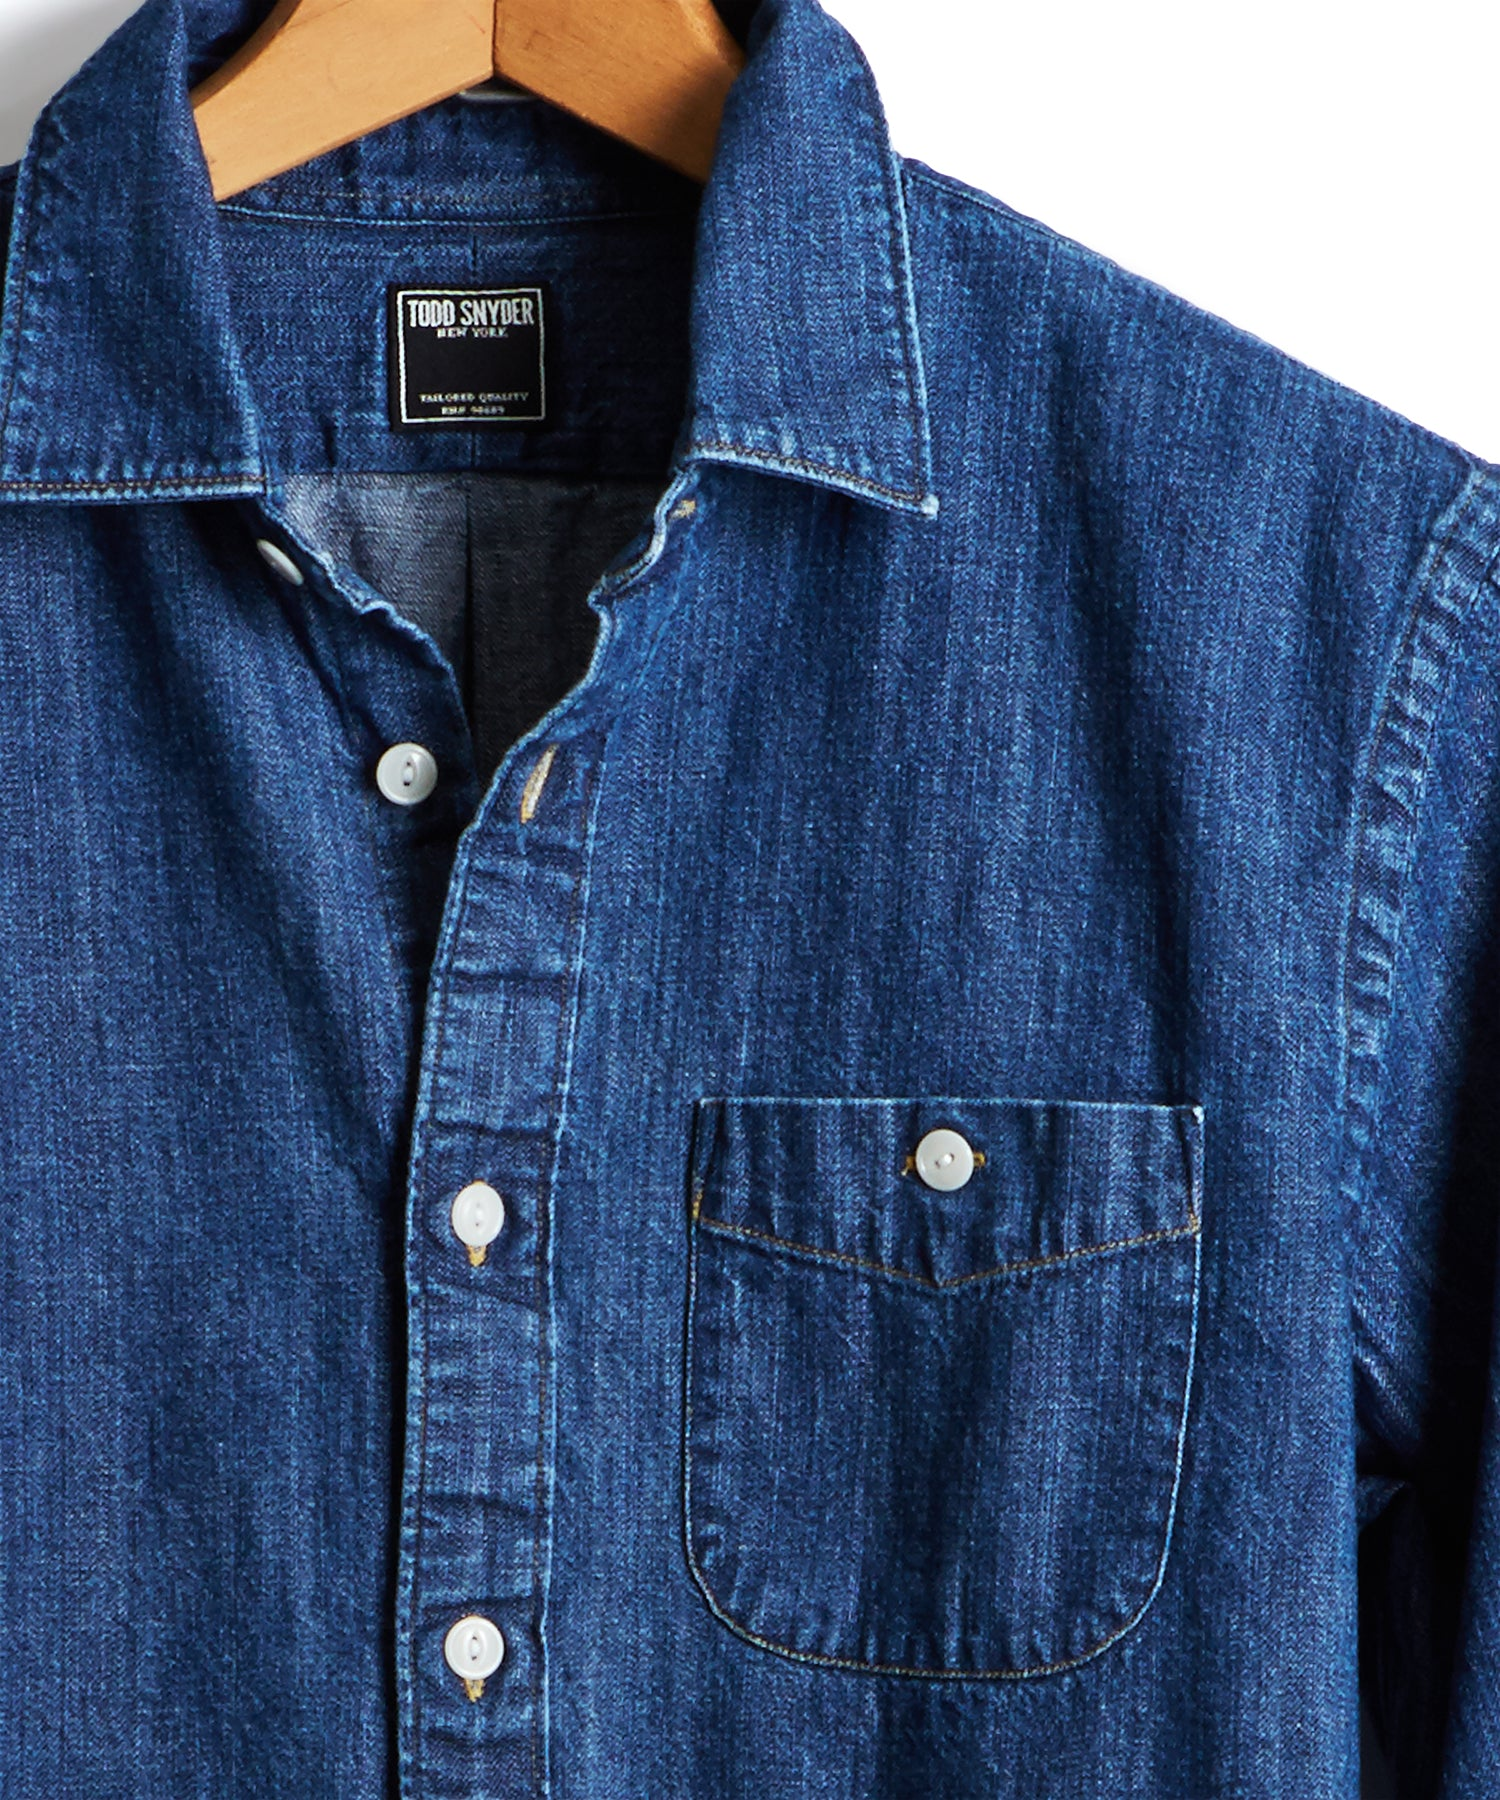 Indigo Denim Button Down Shirt